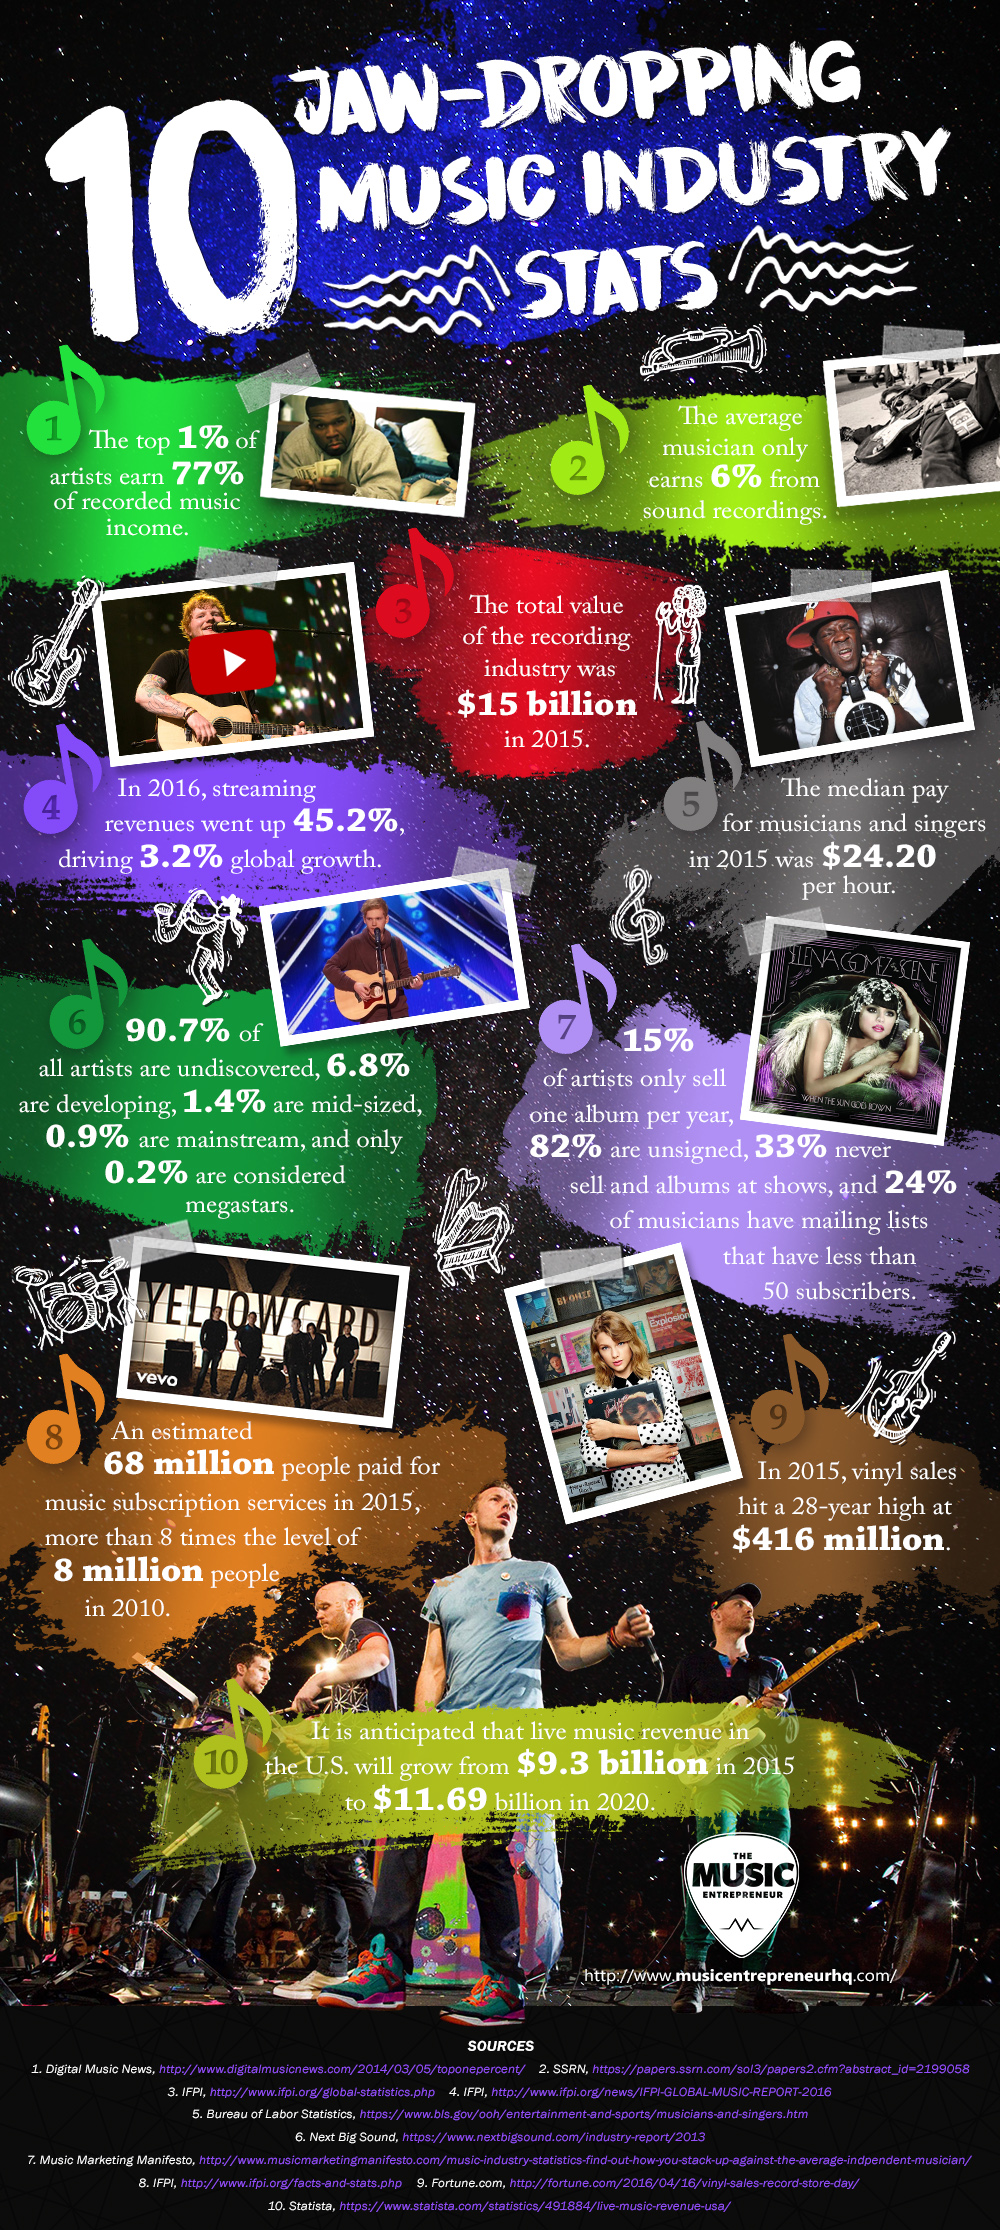 10 Jaw-Dropping Music Industry Stats infographic